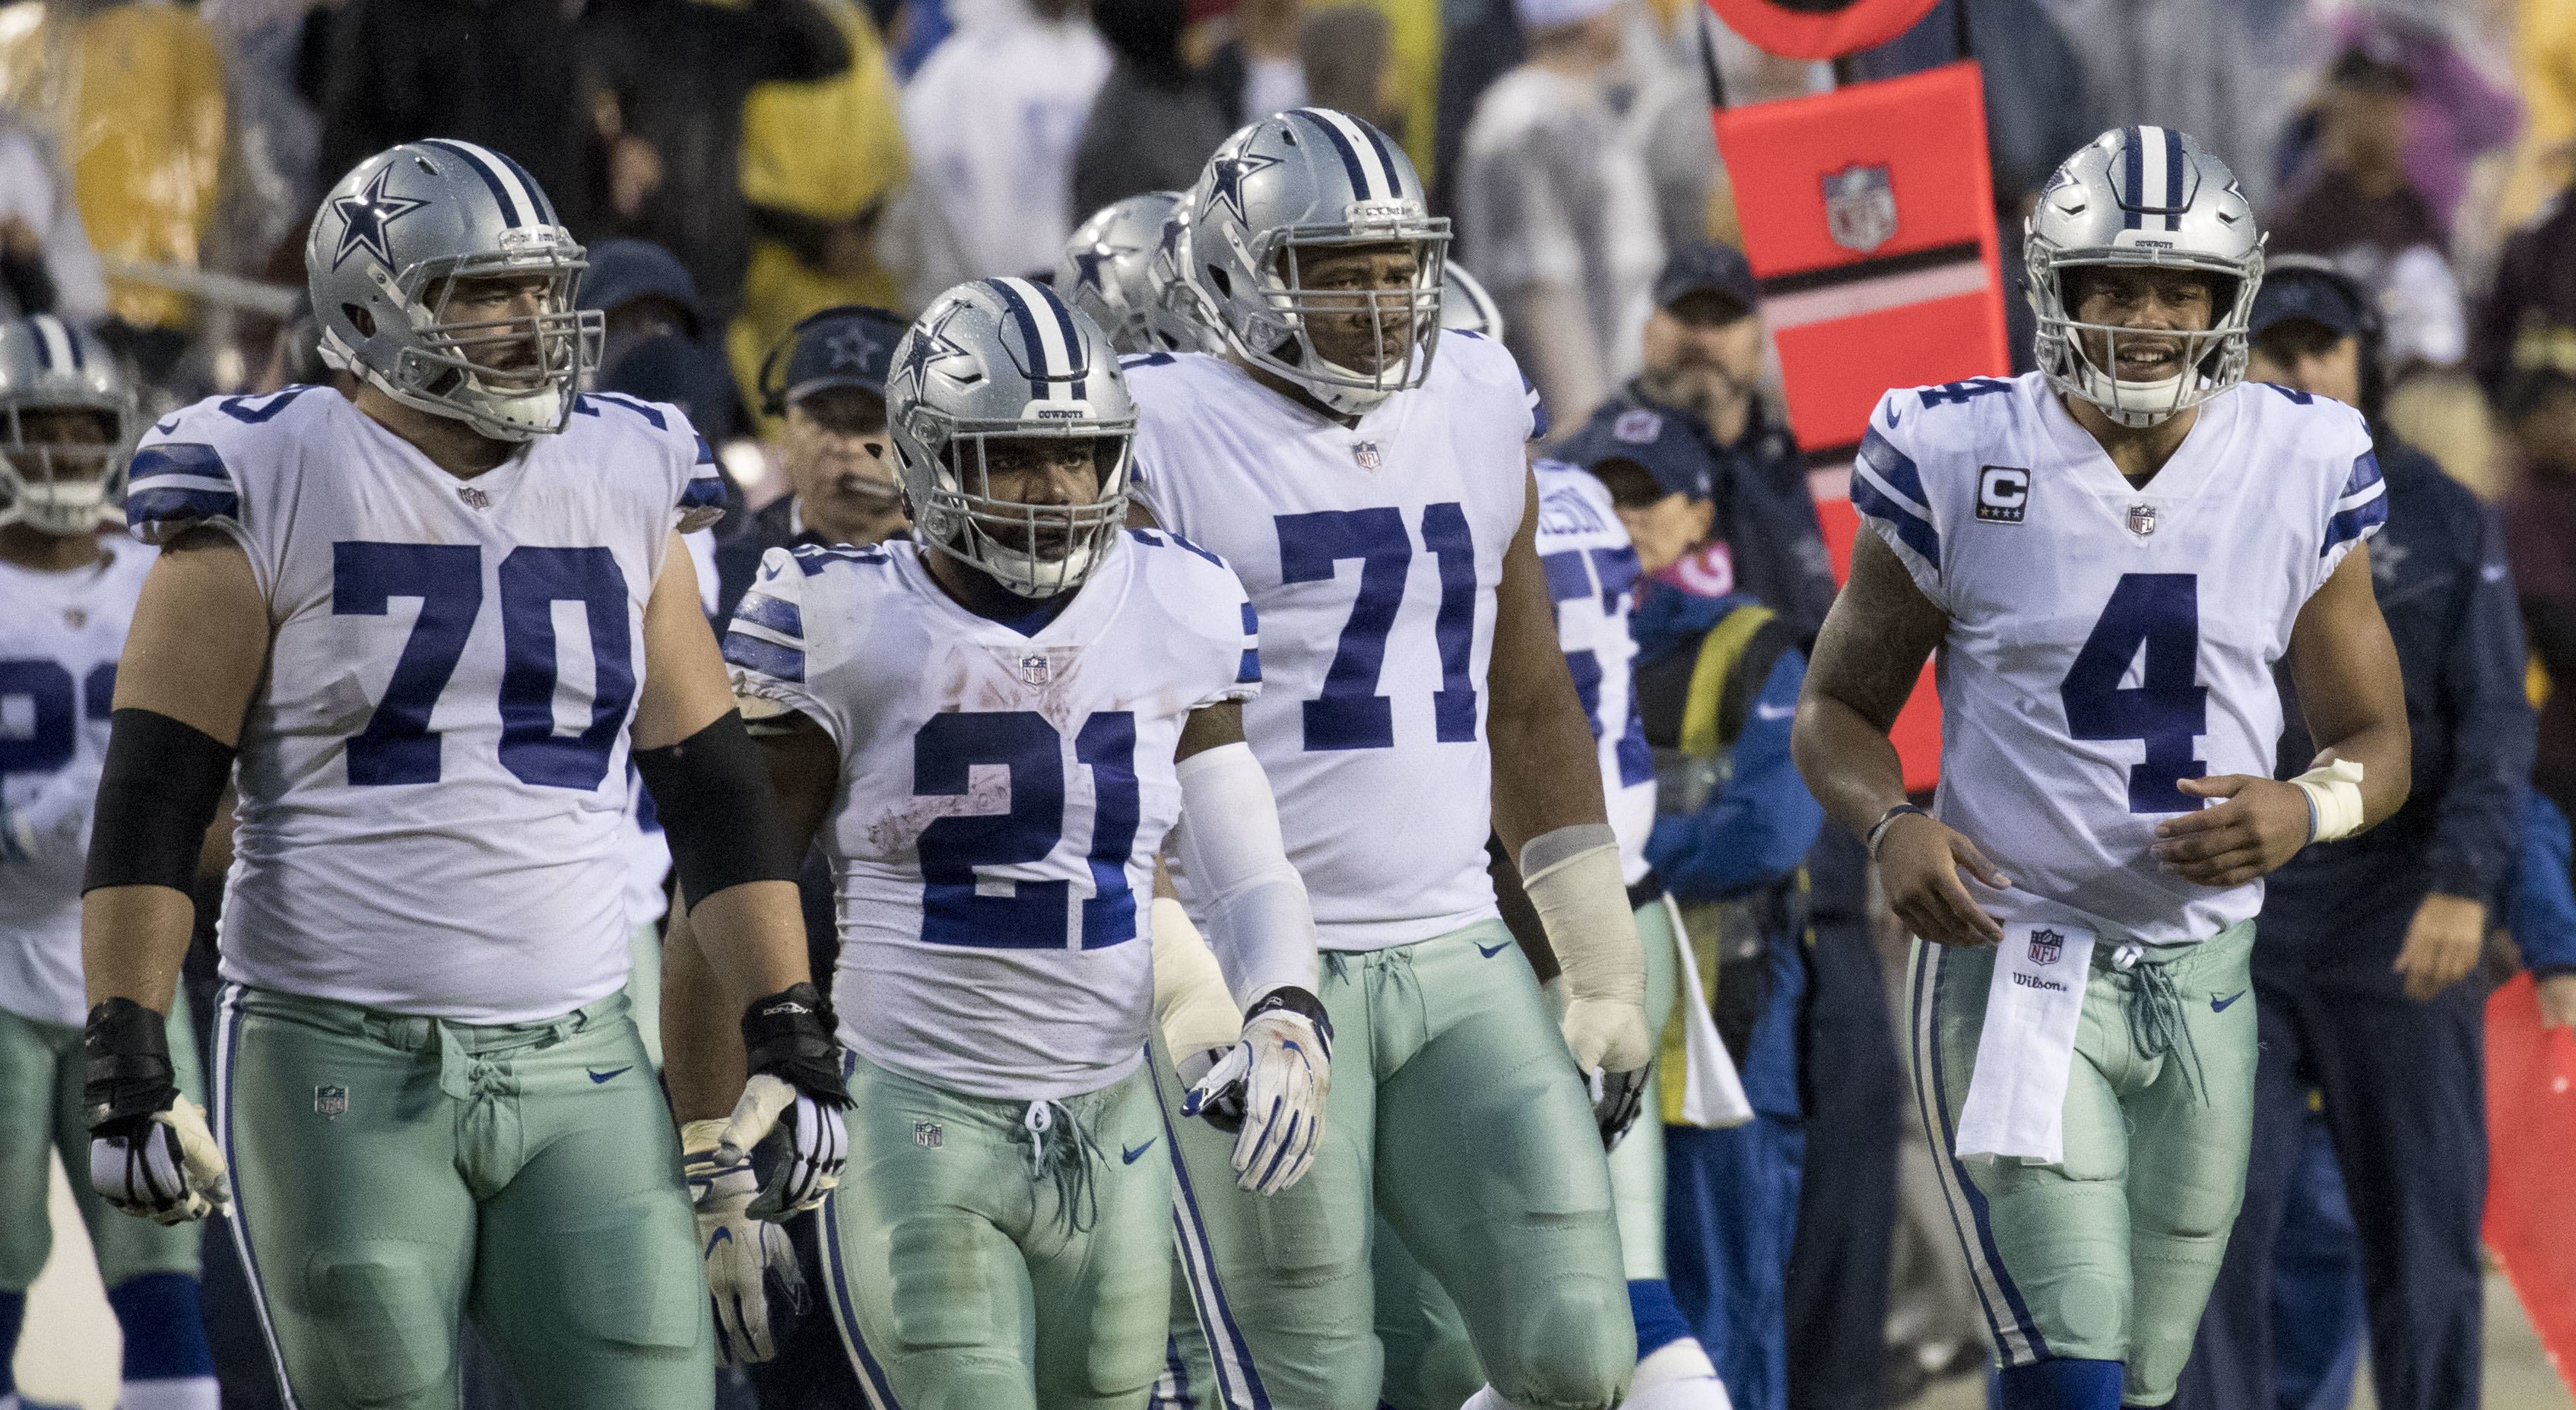 Sean-martin_dallas-cowboys_cowboys-face-latest-challenge-fighting-for-first-road-win-at-redskins